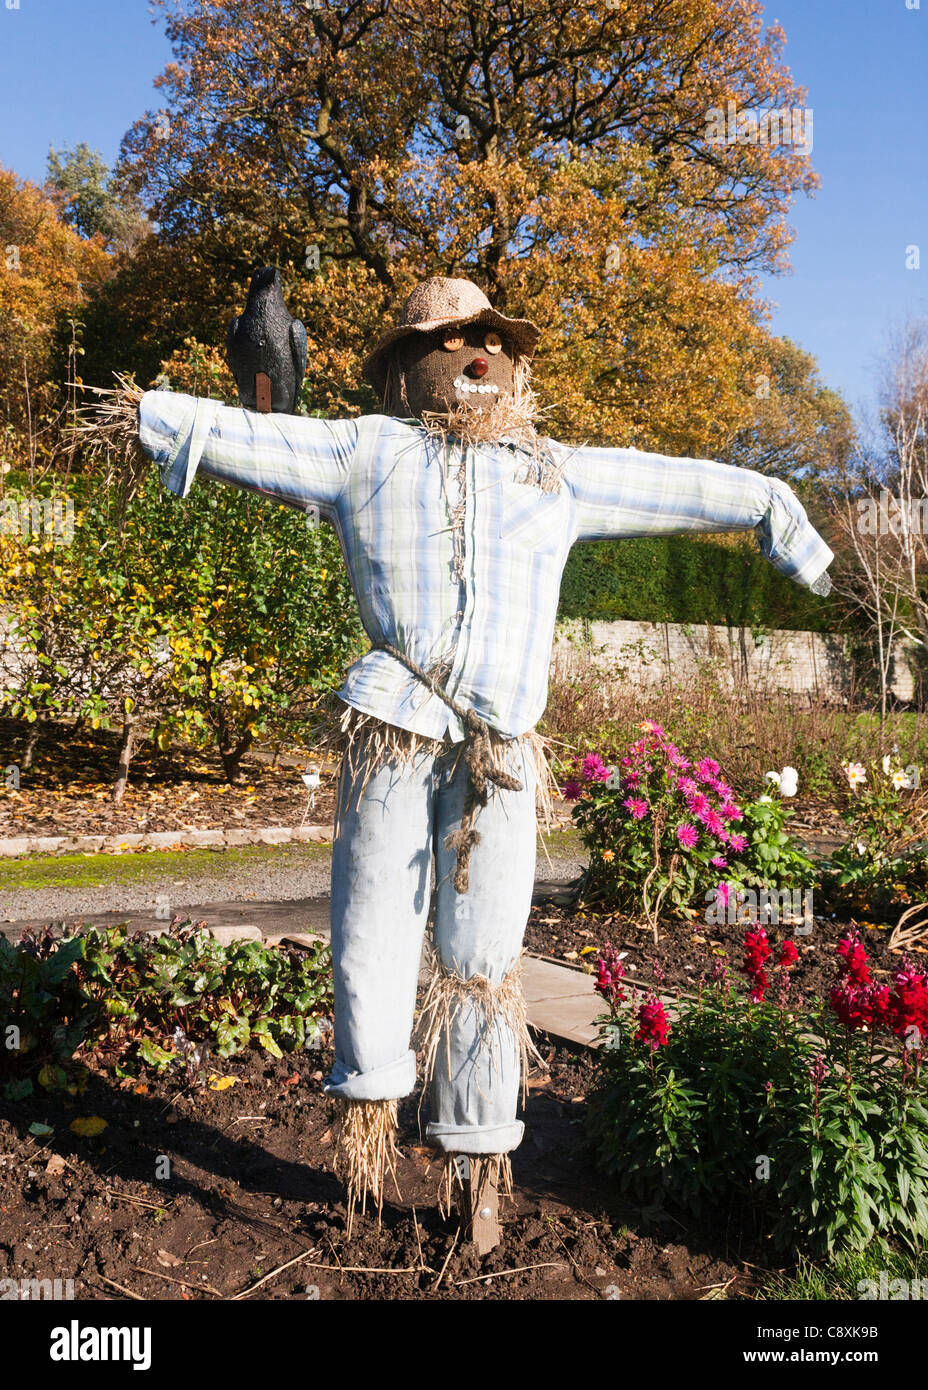 A straw stuffed scarecrow placed as a feature in a garden, Autumn, Britain. - Stock Image